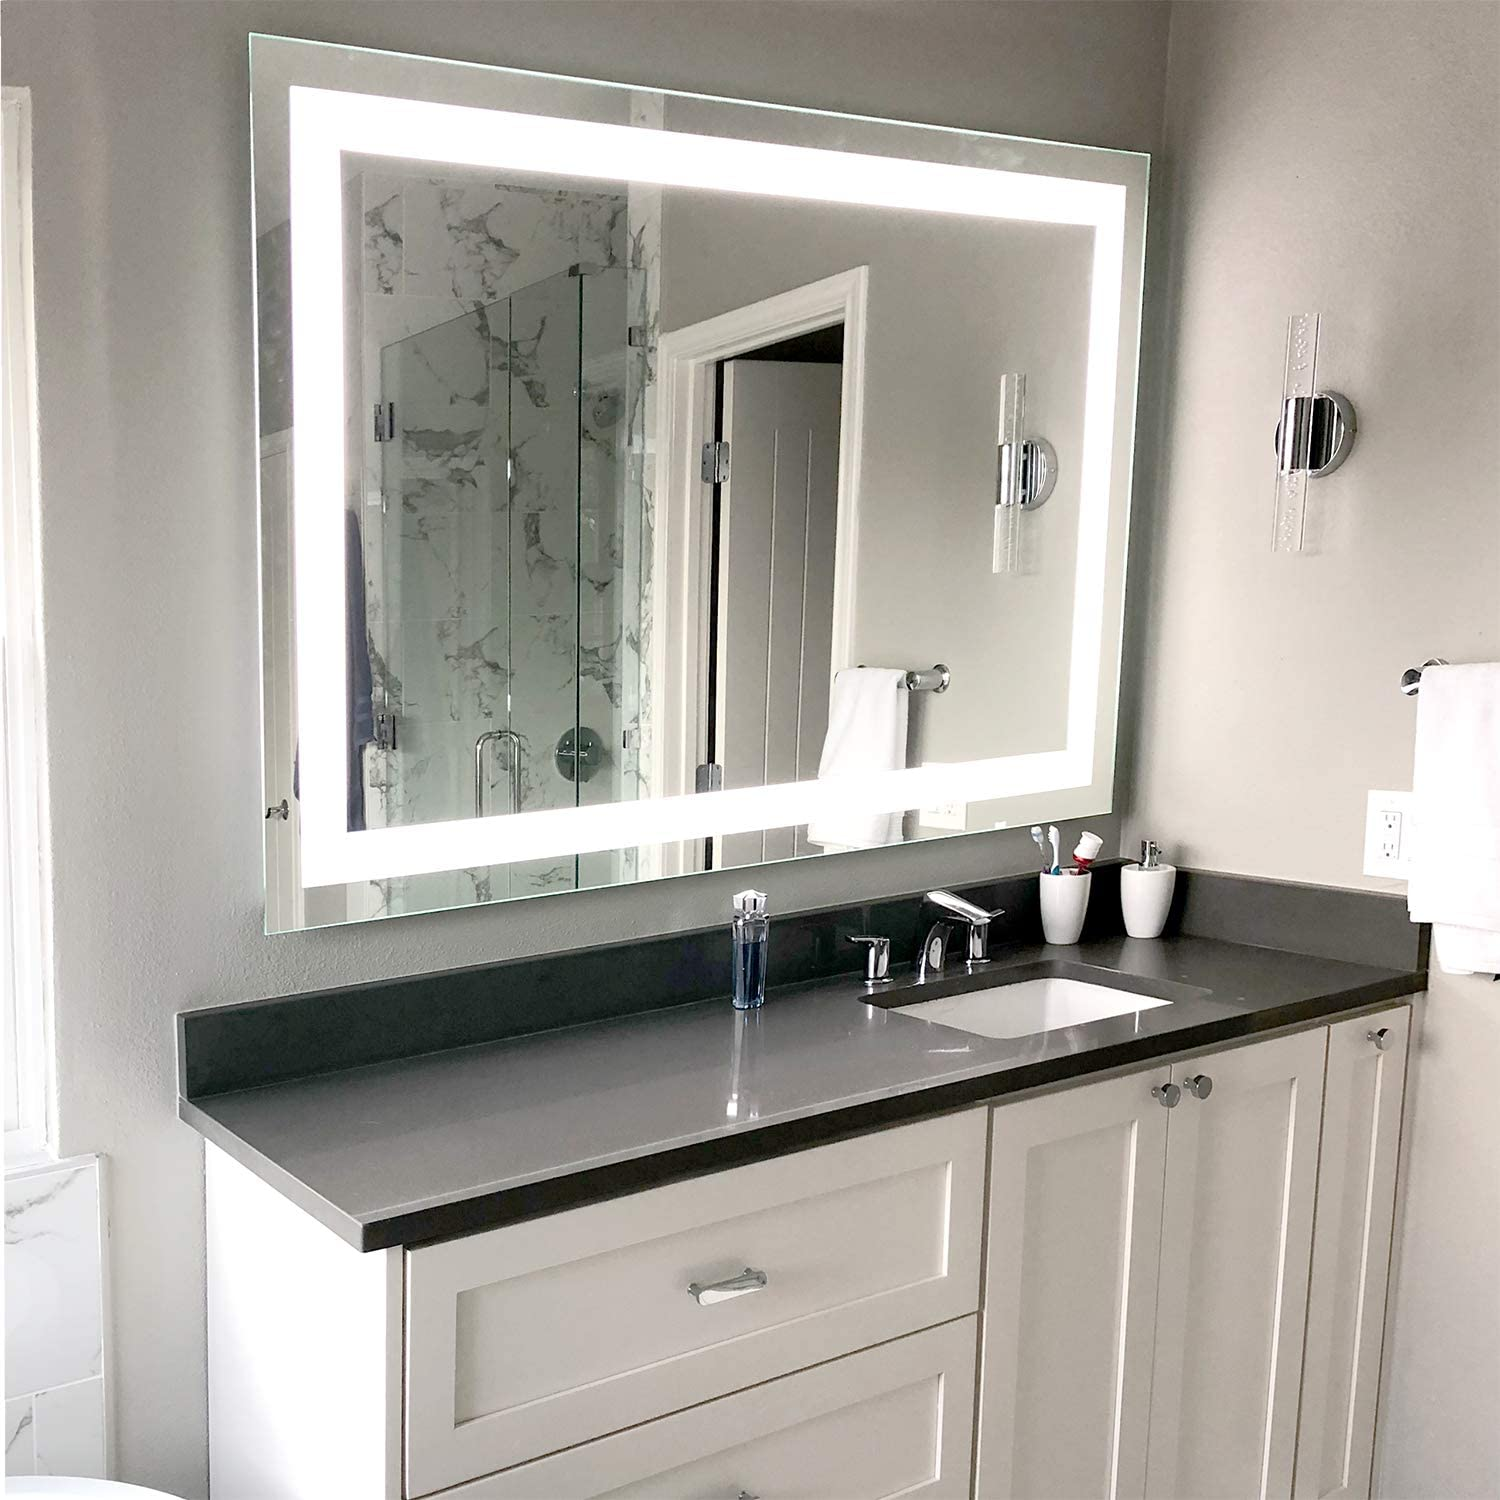 Amazon Com Led Front Lighted Bathroom Vanity Mirror 48 Wide X 36 Tall Commercial Grade Rectangular Wall Mounted Kitchen Dining